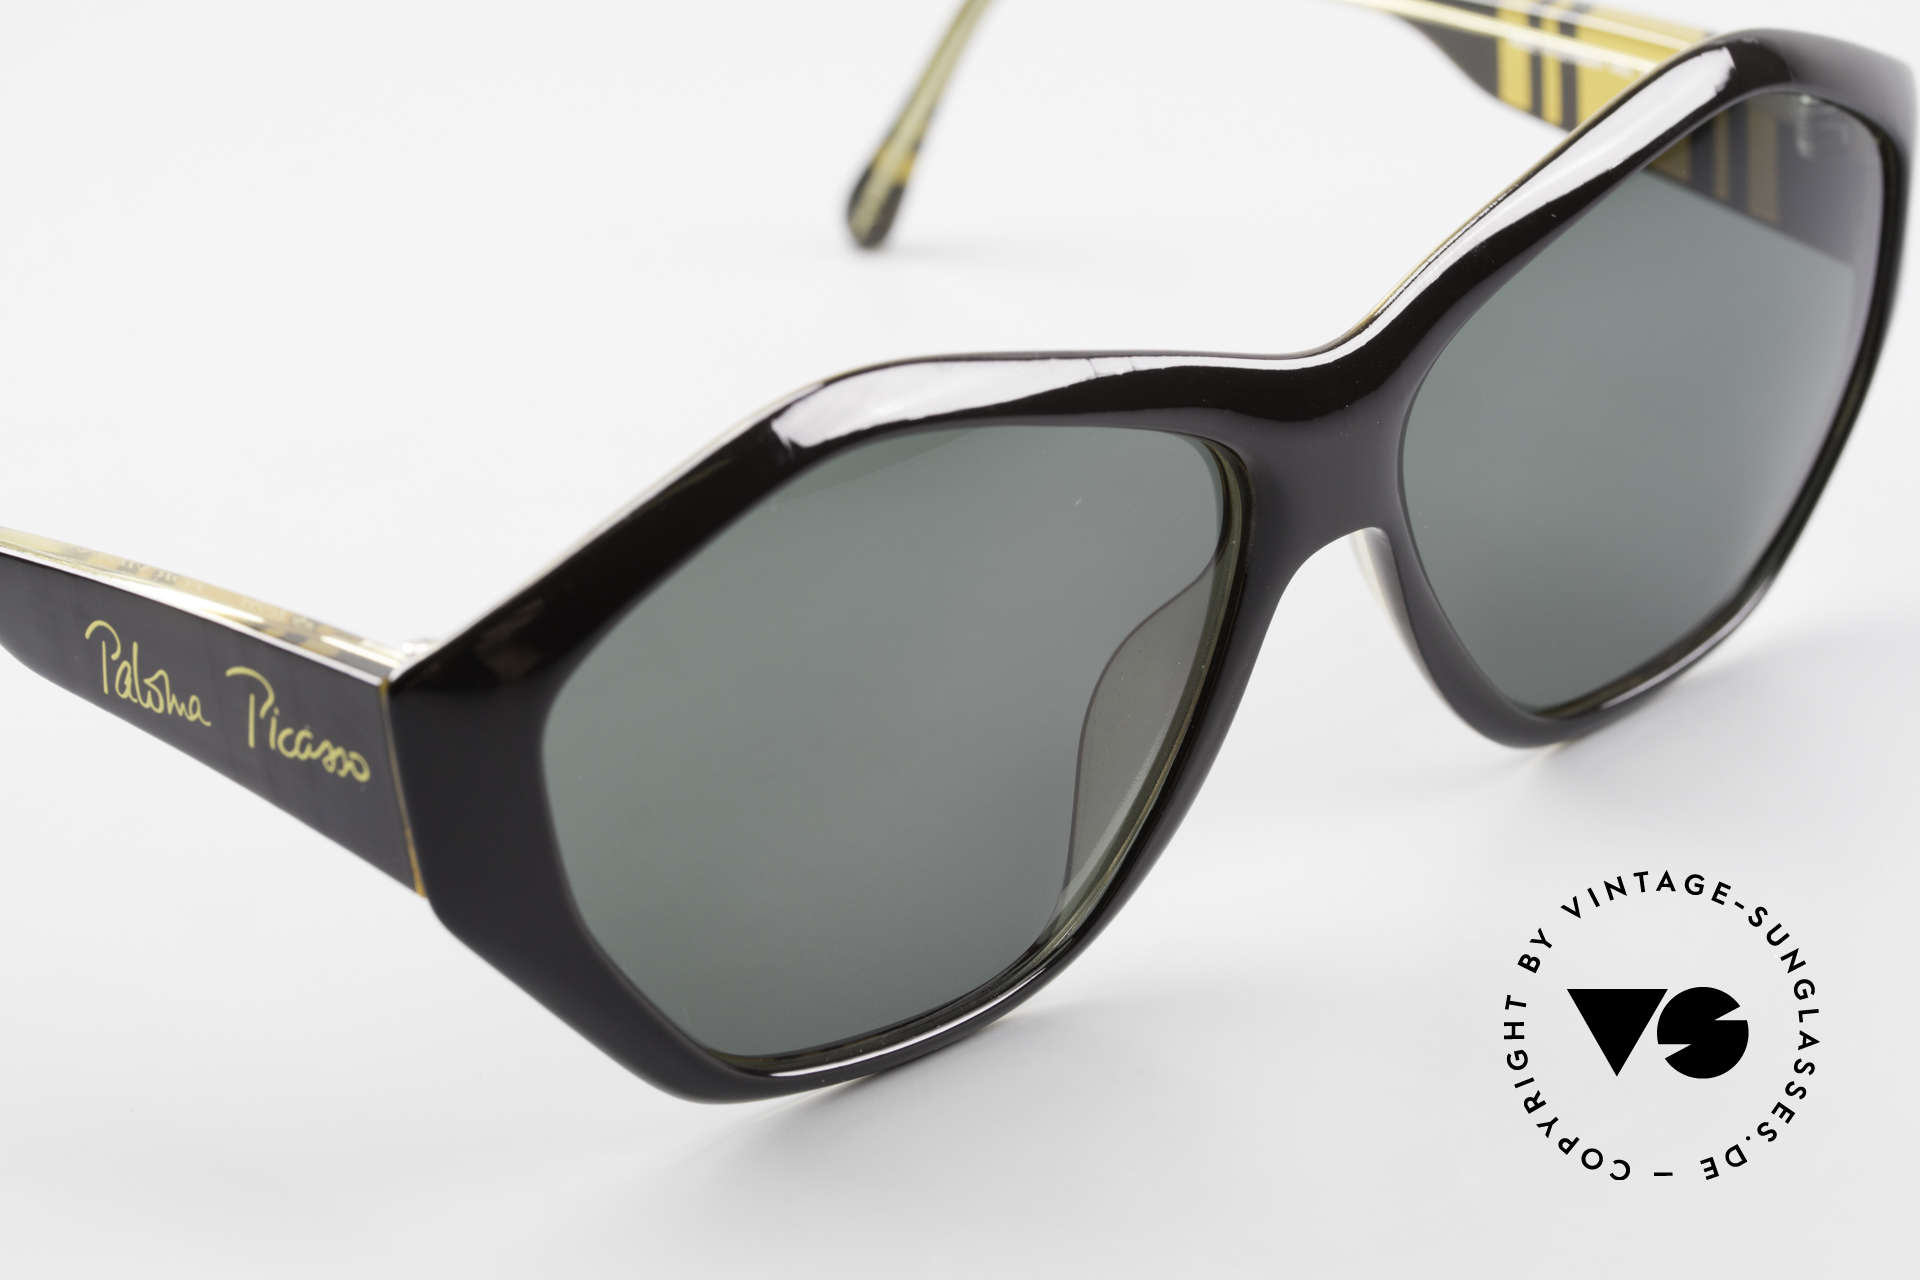 Paloma Picasso 1463 90's Ladies Sunglasses Optyl, fancy gimmick: the case can be used as wallet, too, Made for Women